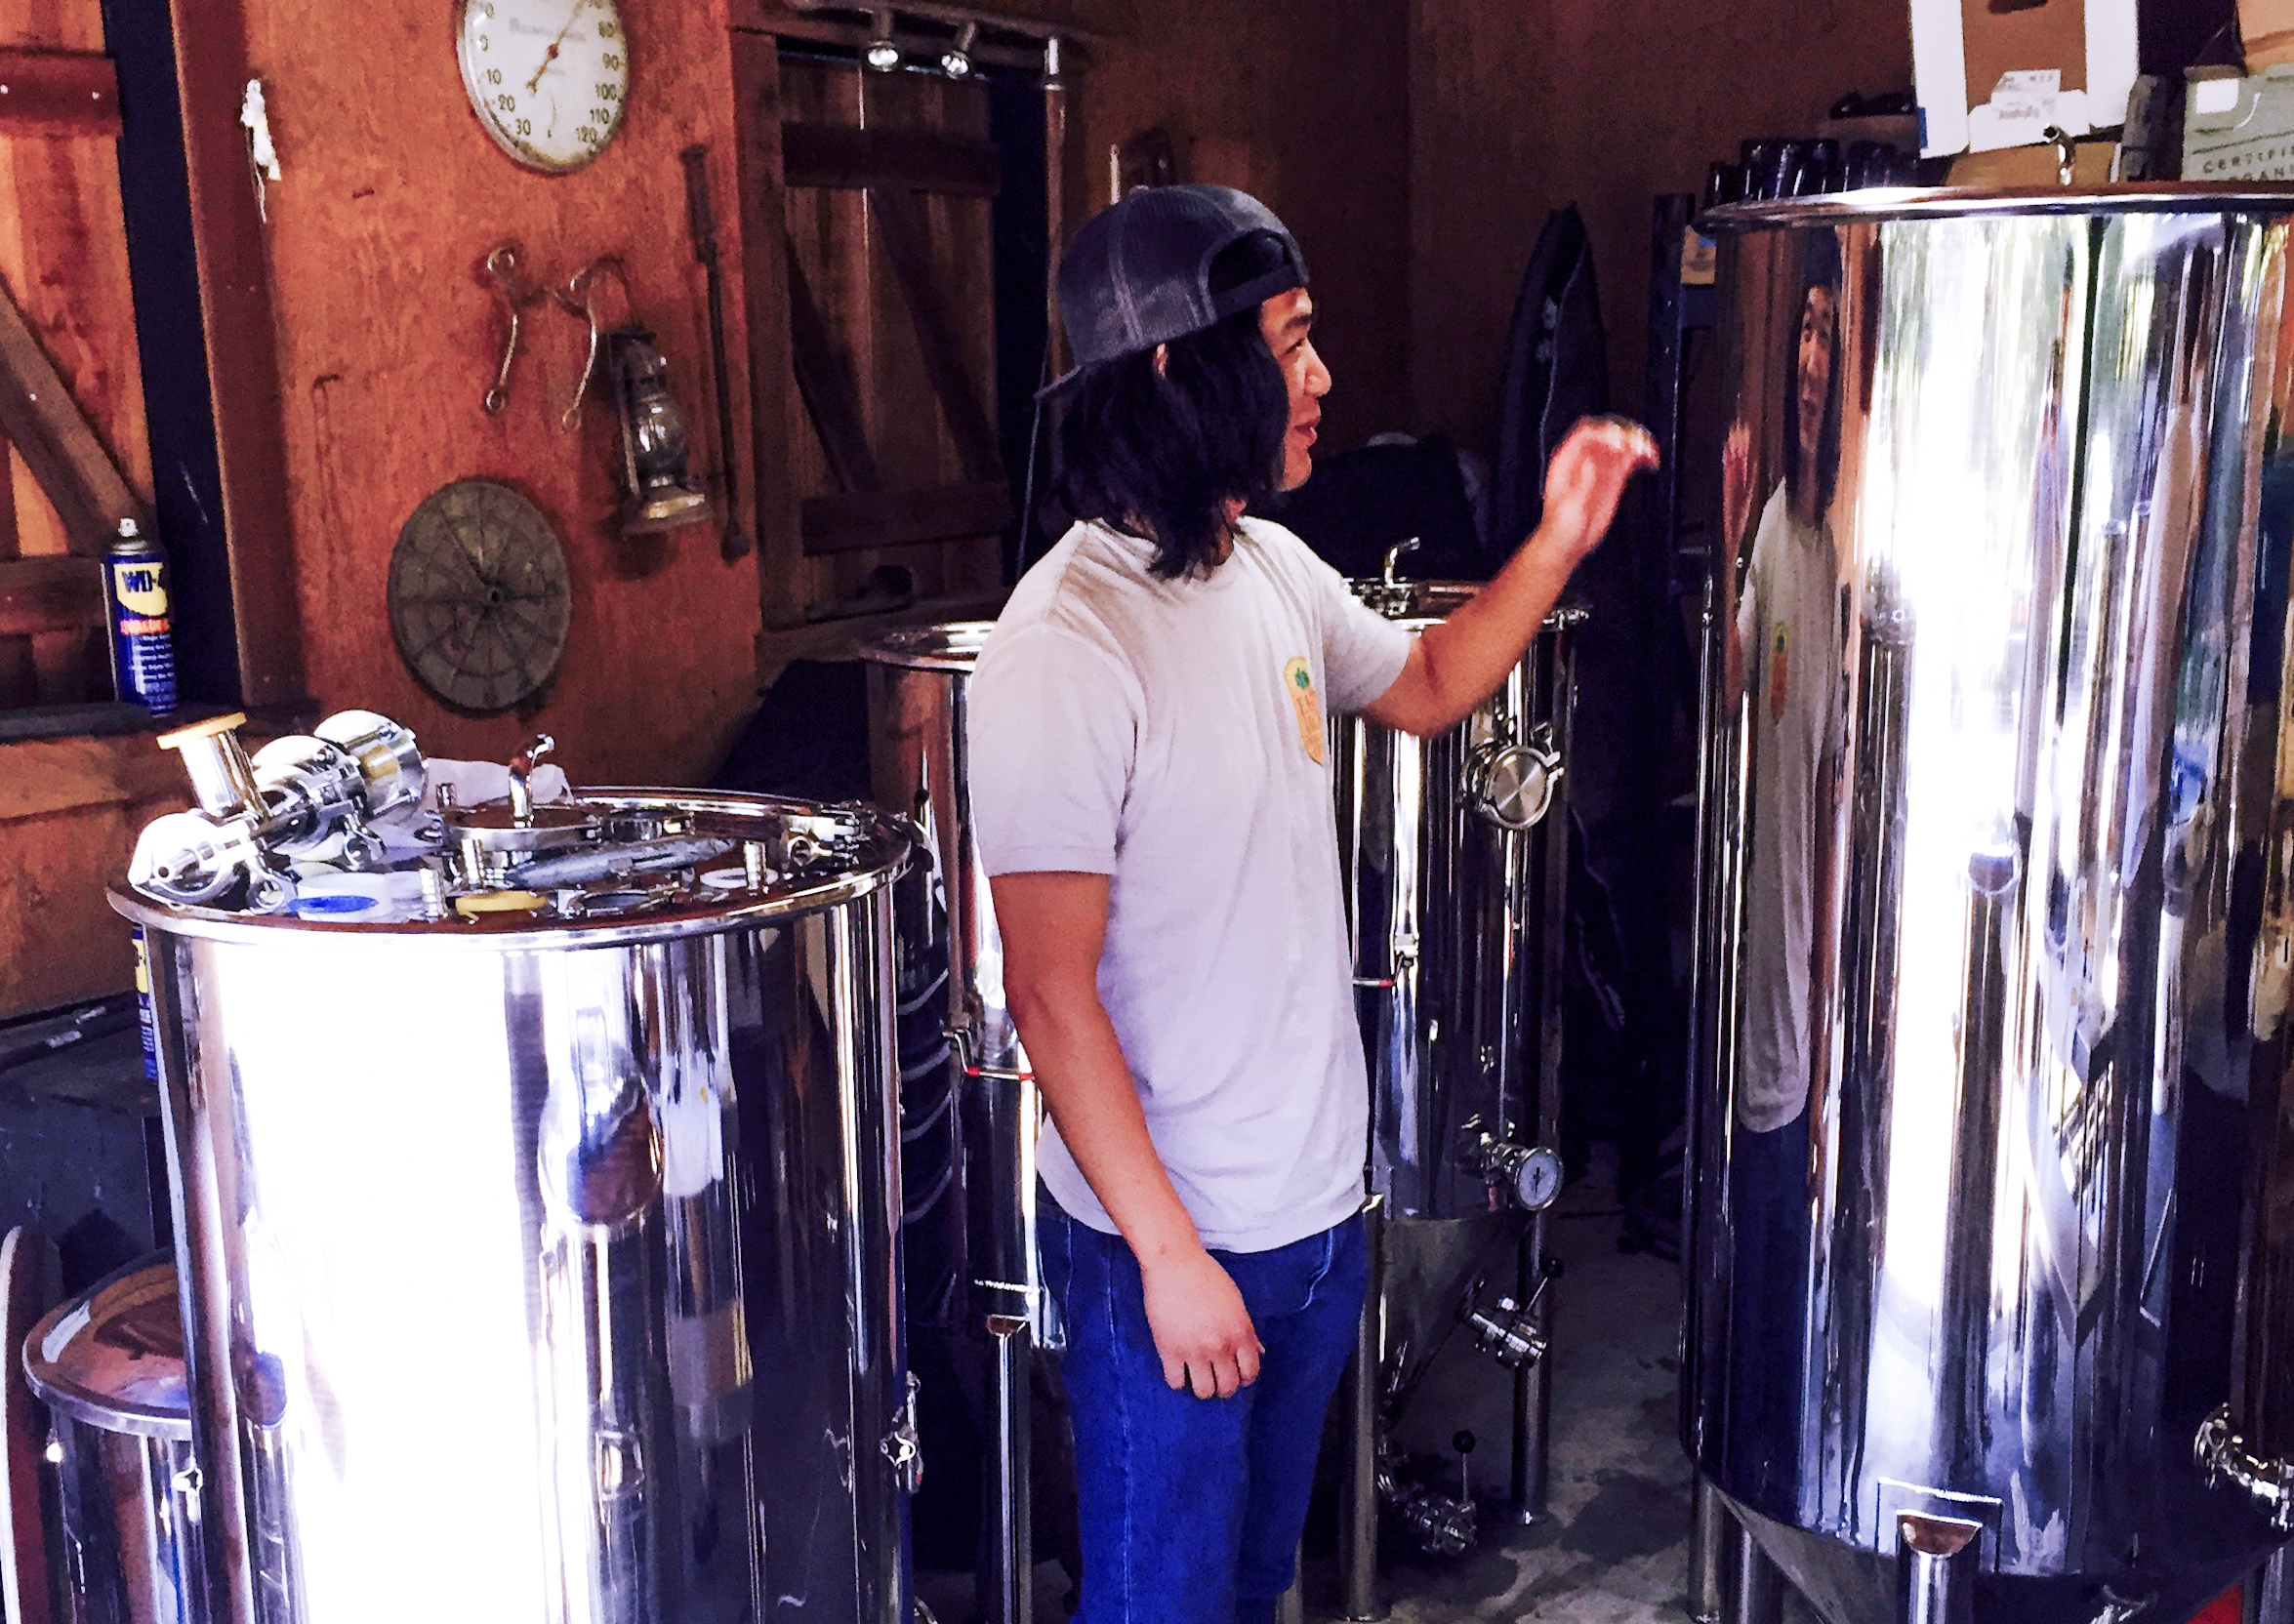 For scale we placed one of our favorite beer nerds, Rory McKee, next to our Pilot System (and to admire his reflection). It's not Sierra Nevada, but it's a start!